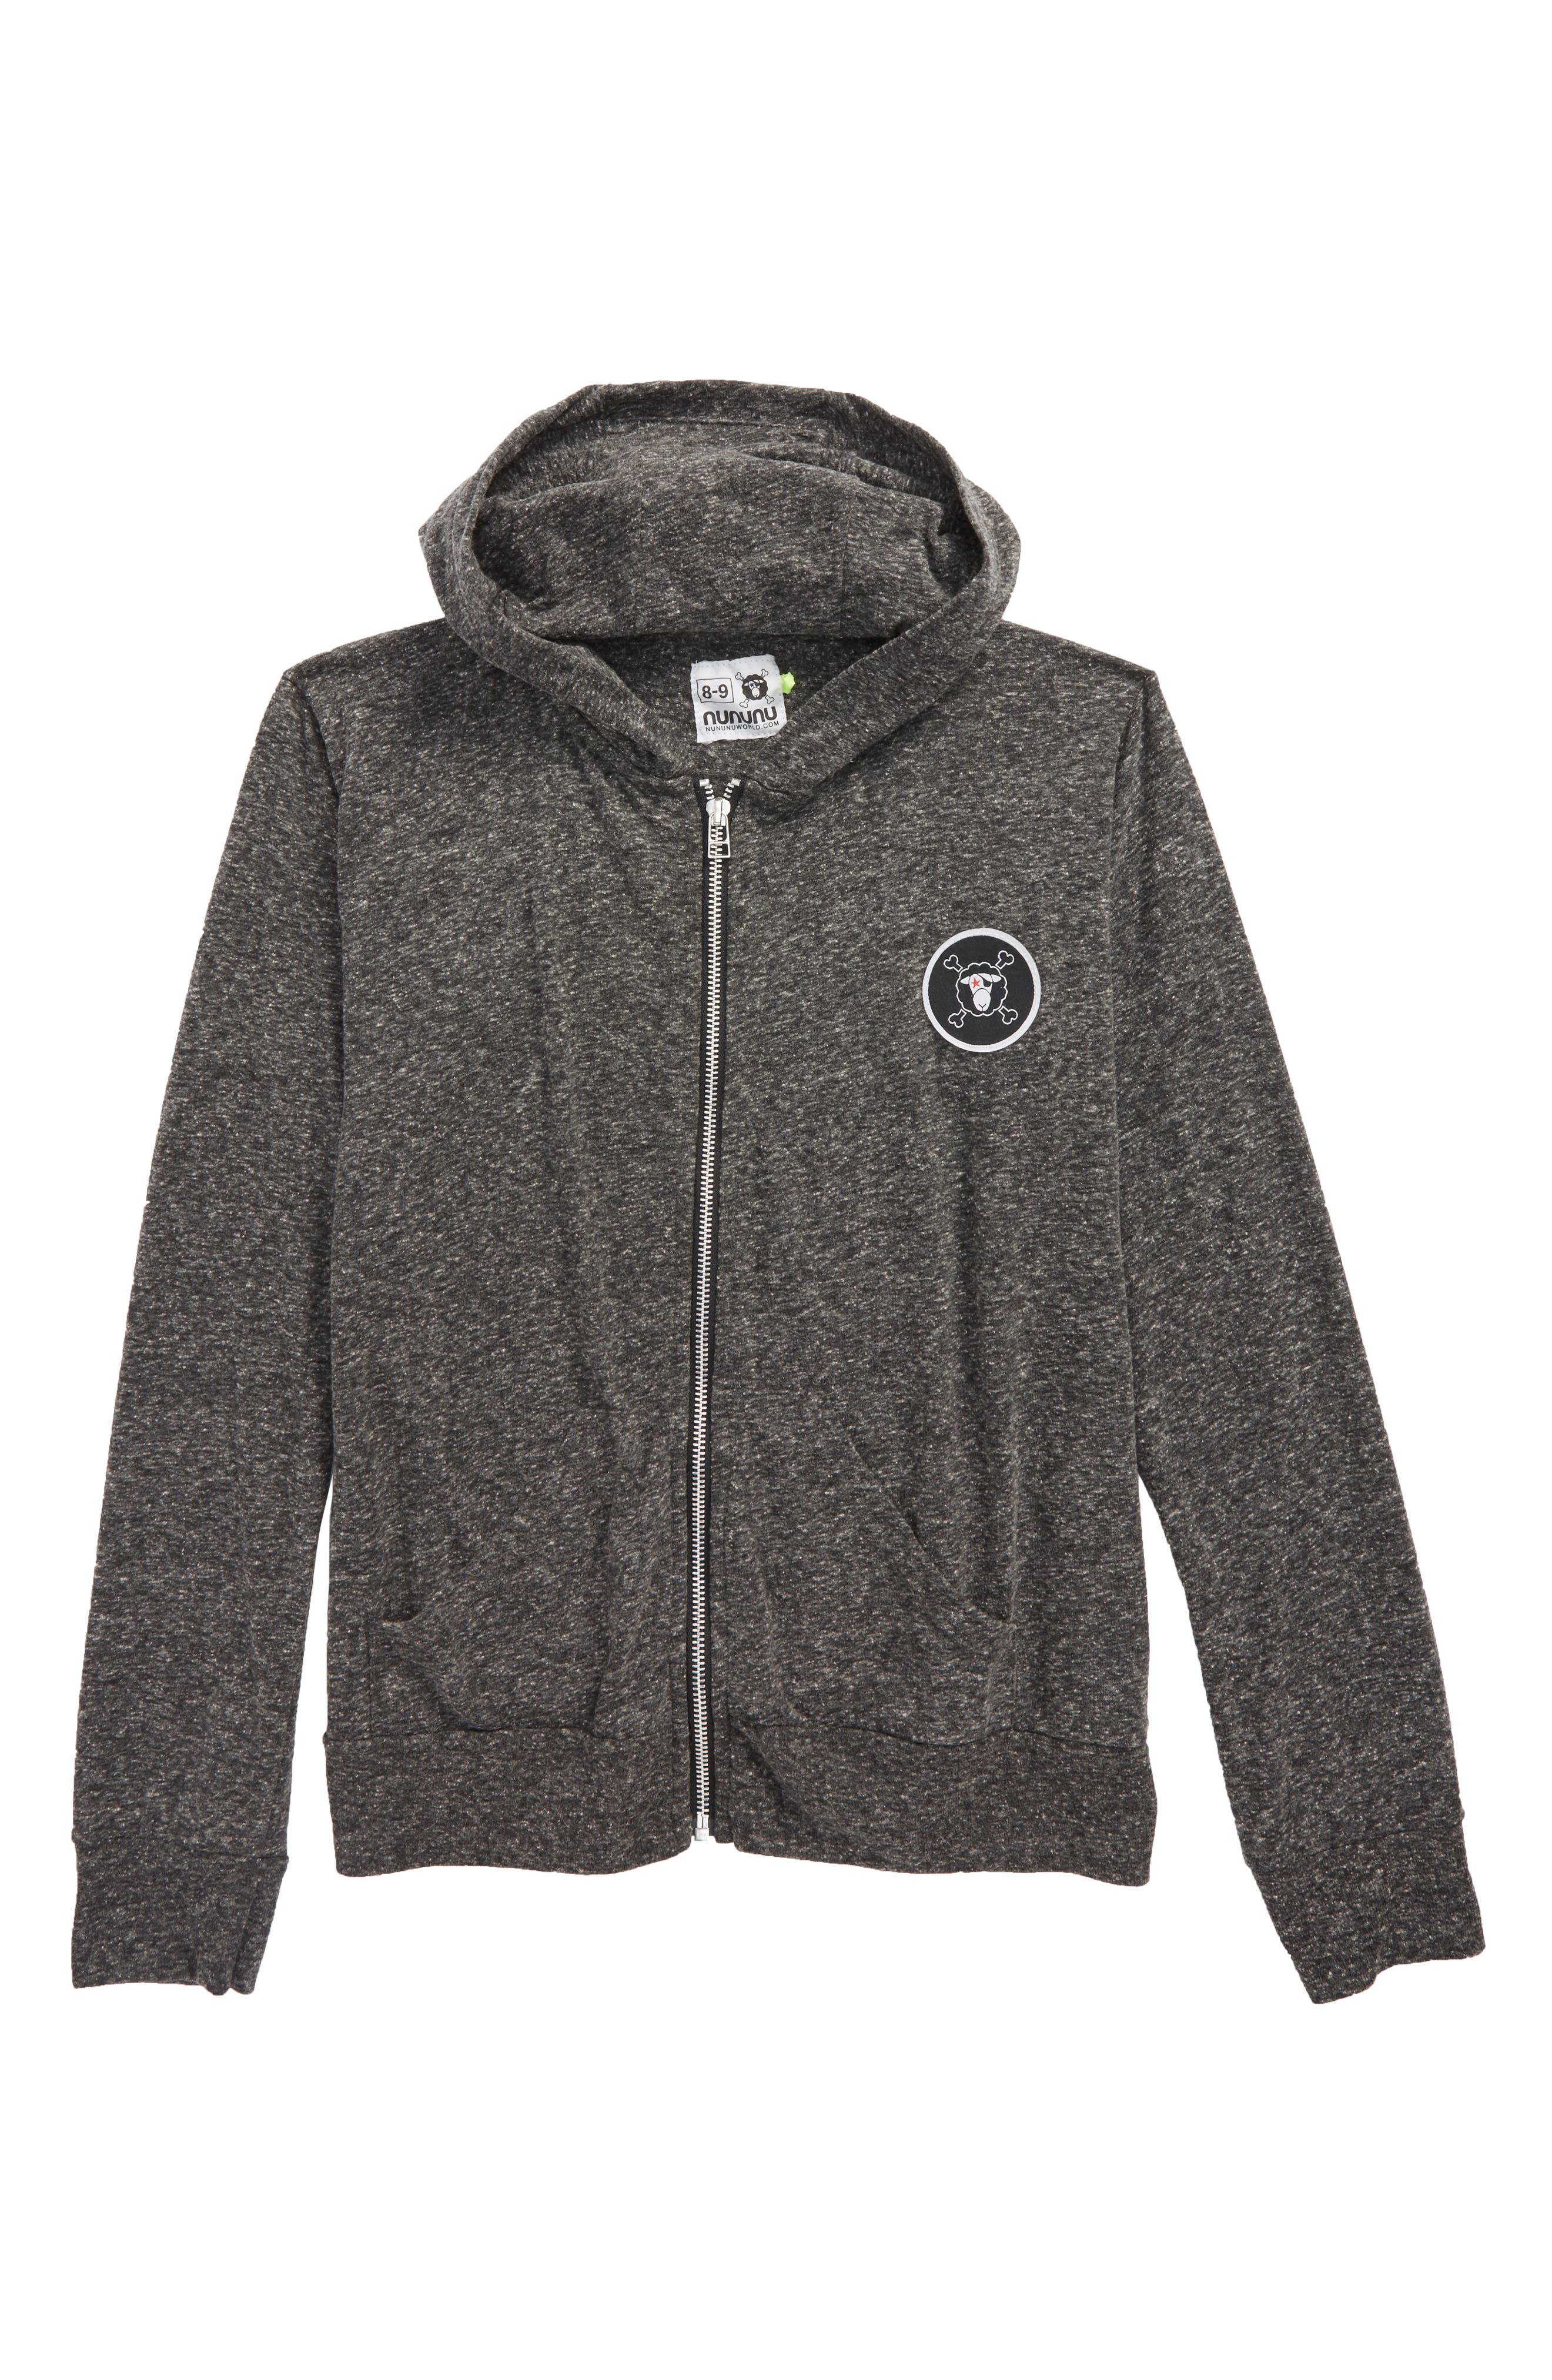 Alternate Image 1 Selected - Nununu Logo Patch Zip Front Hoodie (Toddler Boys, Little Boys & Big Boys)